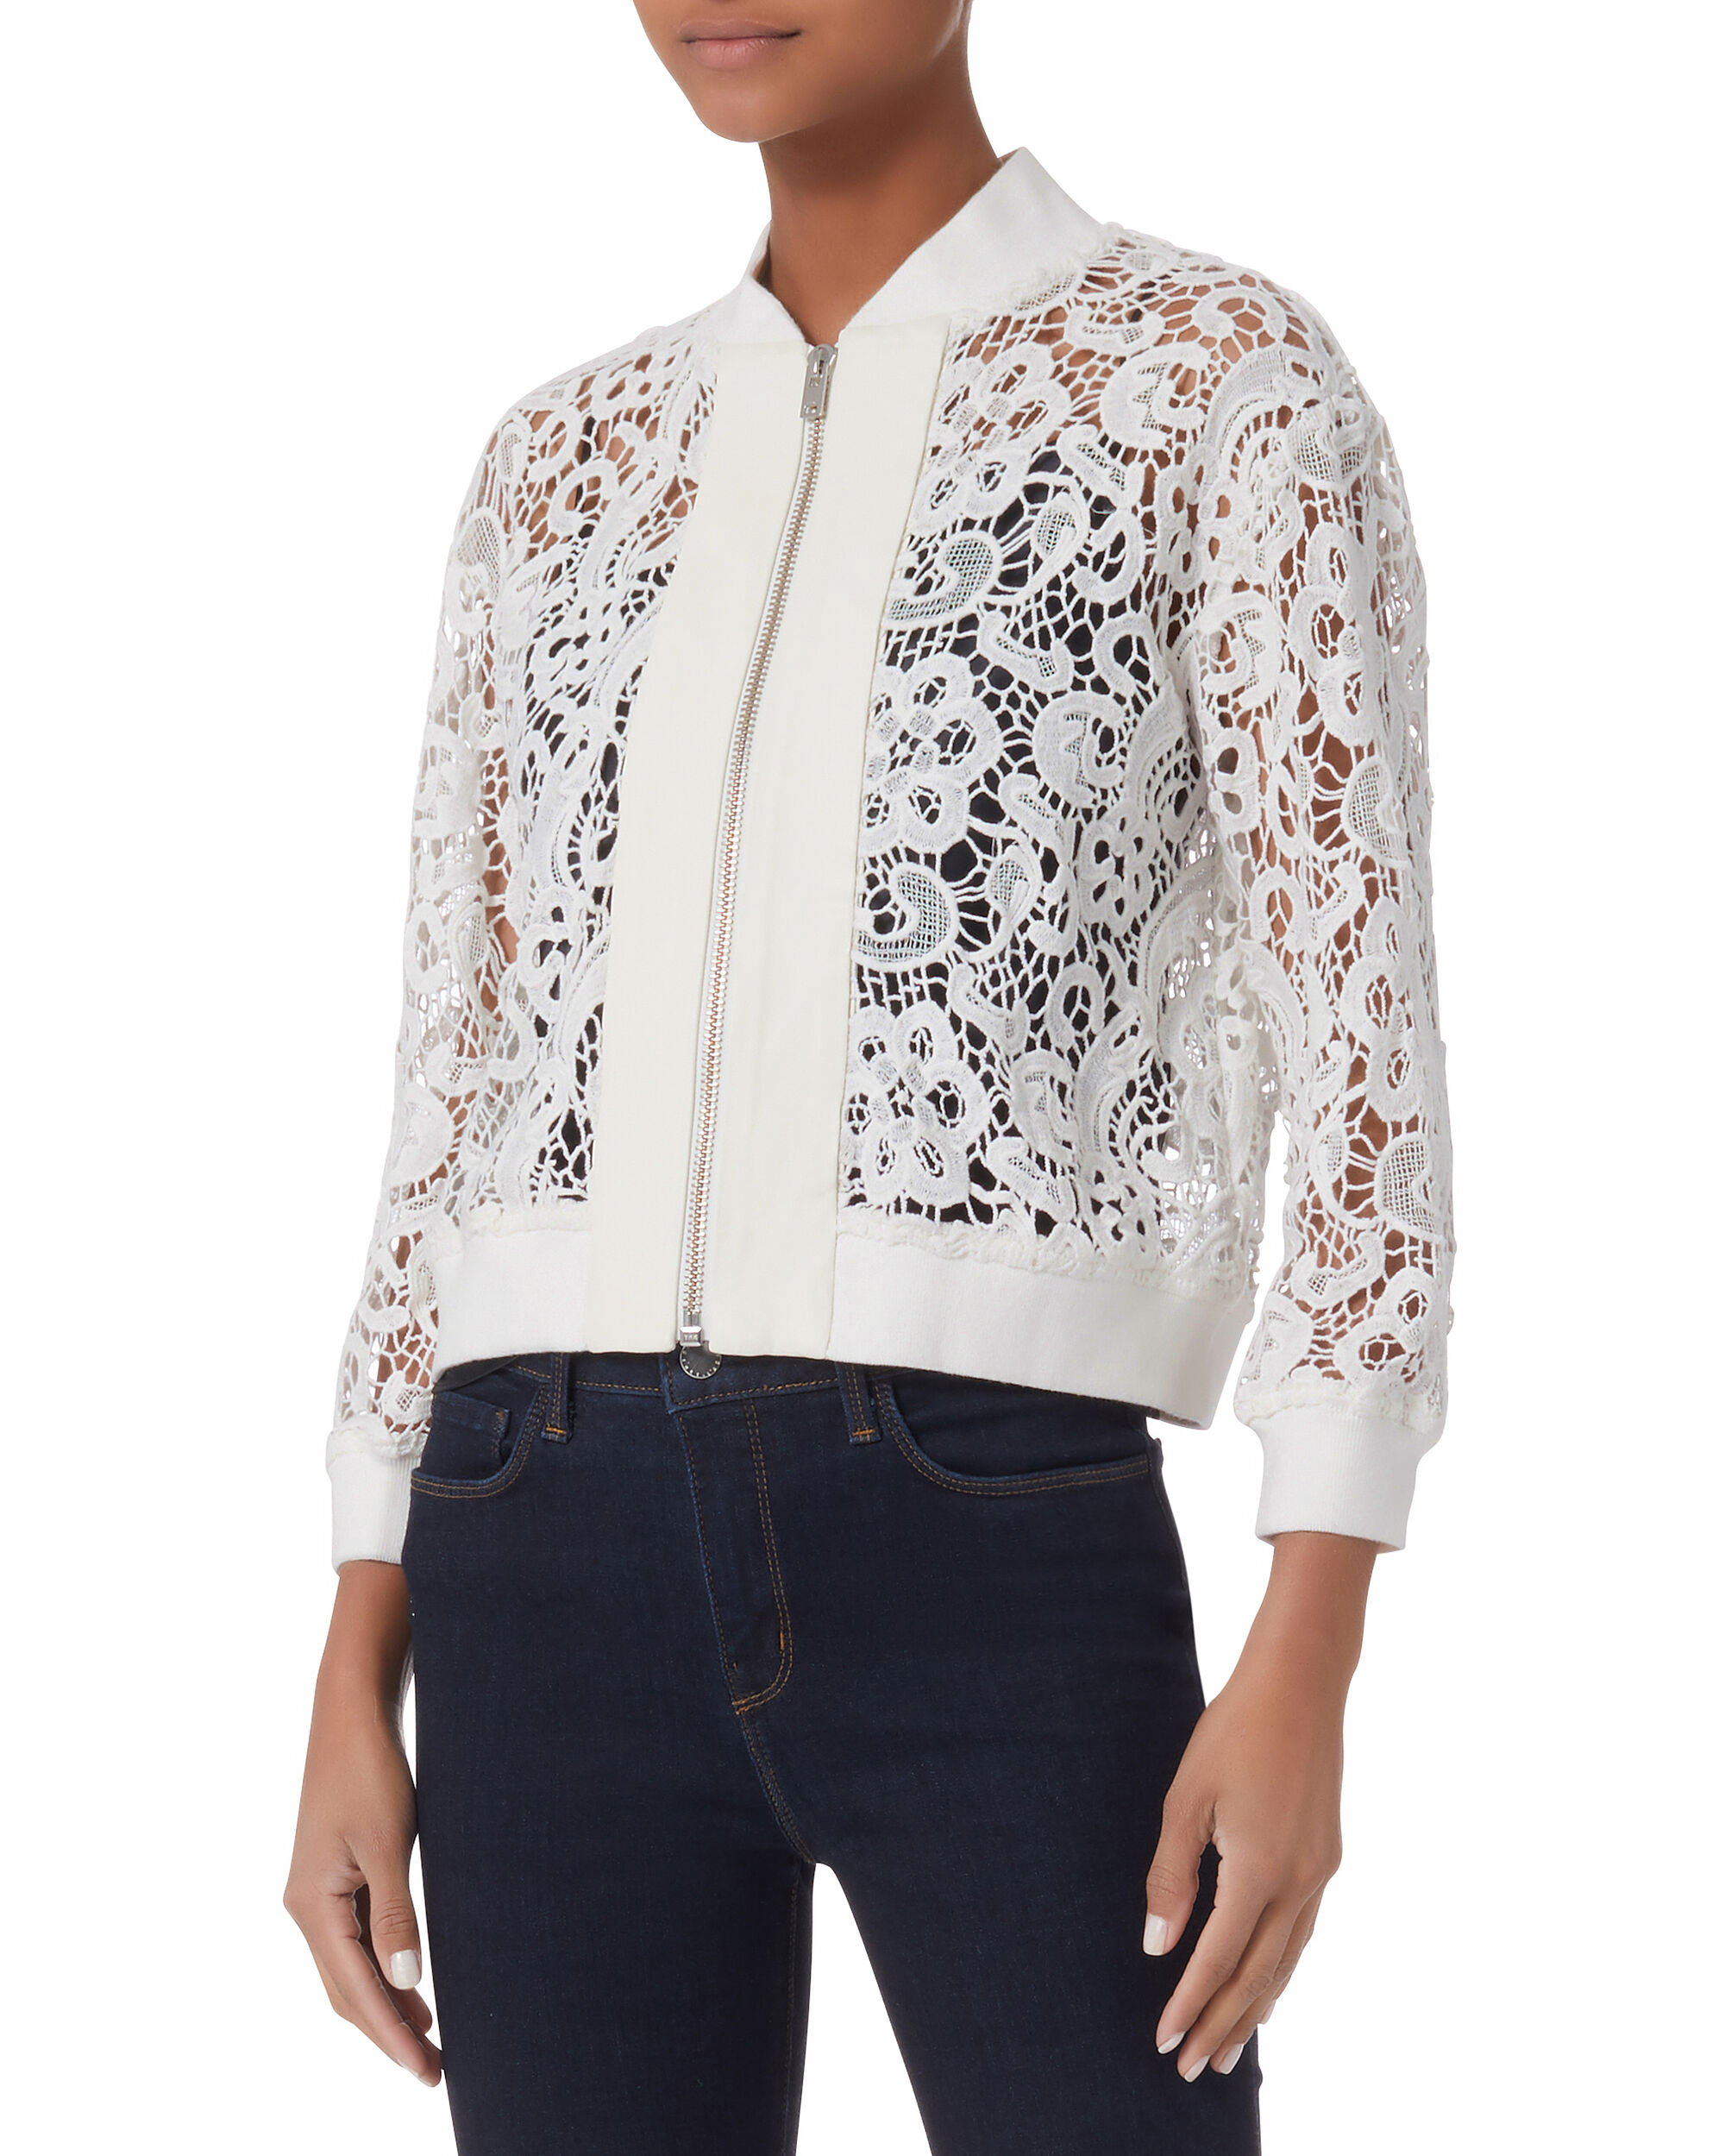 Lace White Bomber Jacket, WHITE, hi-res